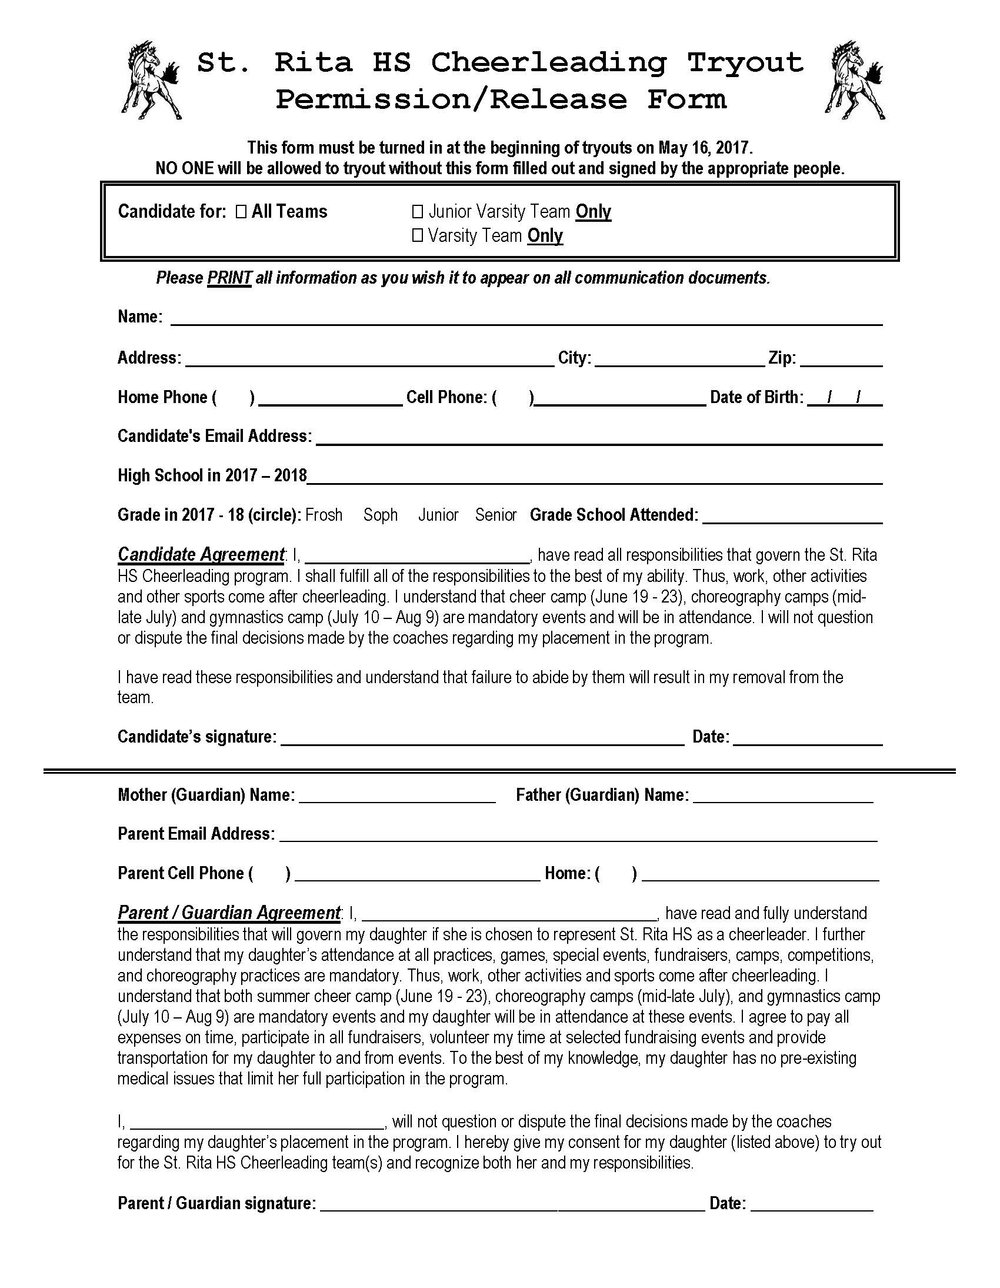 SR Tryout Permission Form_May 2017.jpg